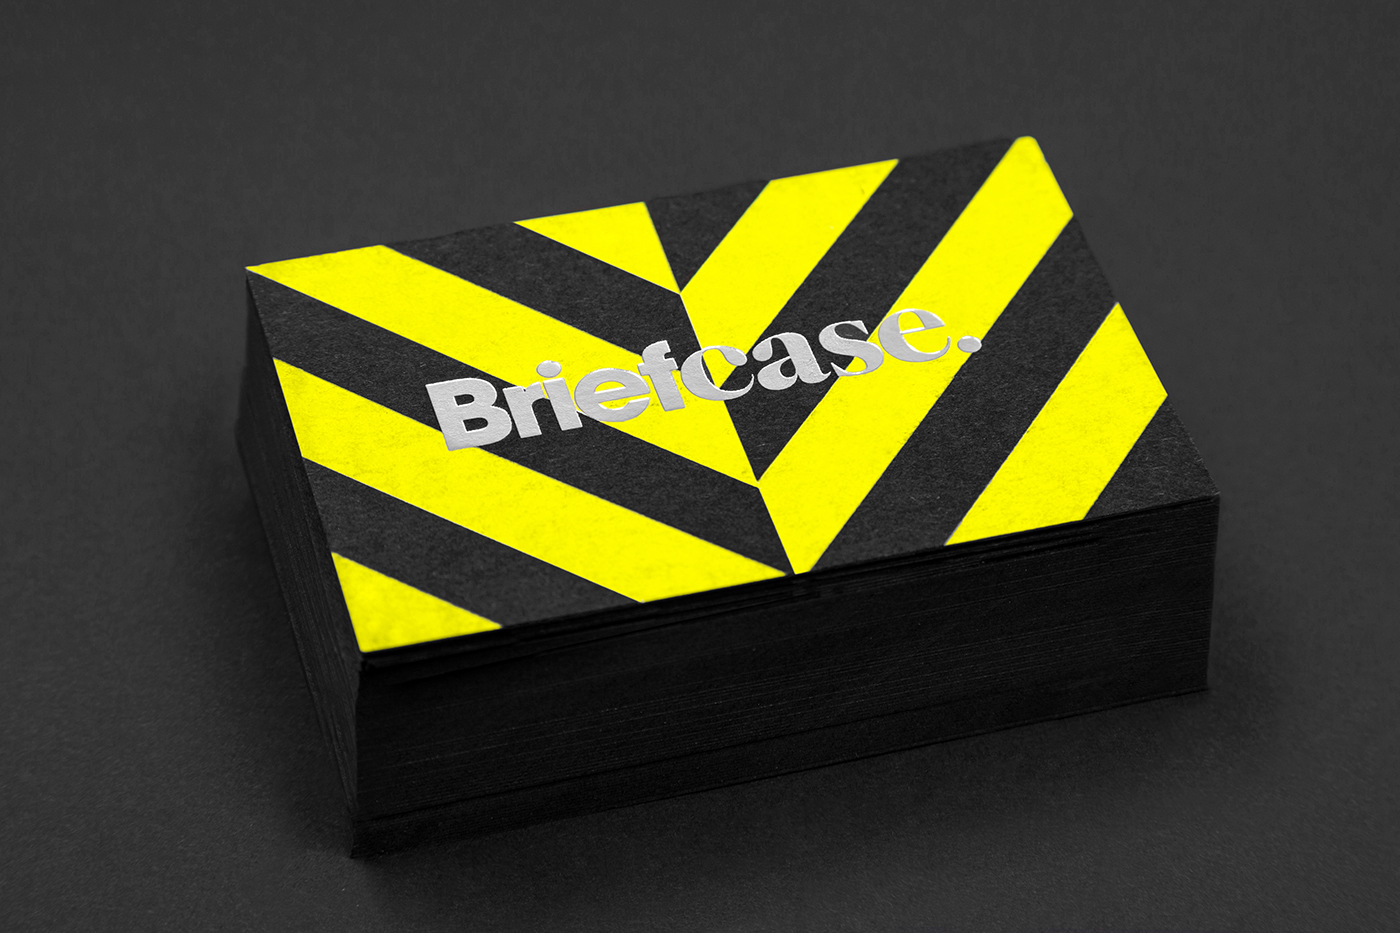 Briefcase Identity by Anagrama